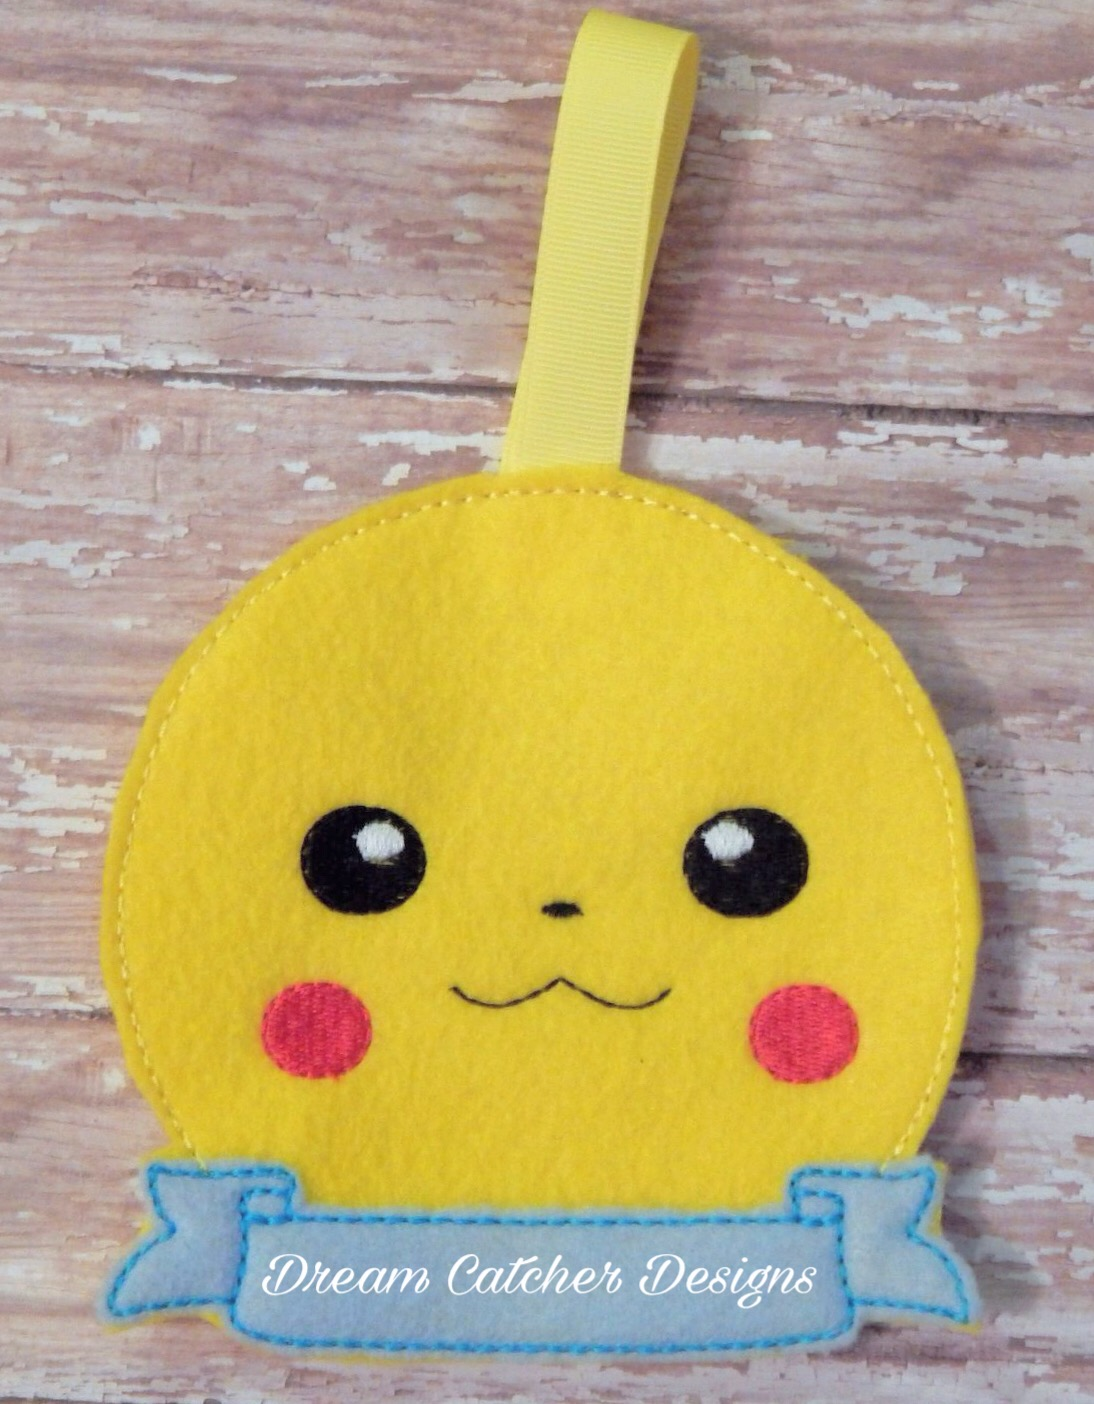 Pikachu Christmas Ornament.In The Hoop Pikachu Felt Christmas Holiday Ornament Embroidery Design